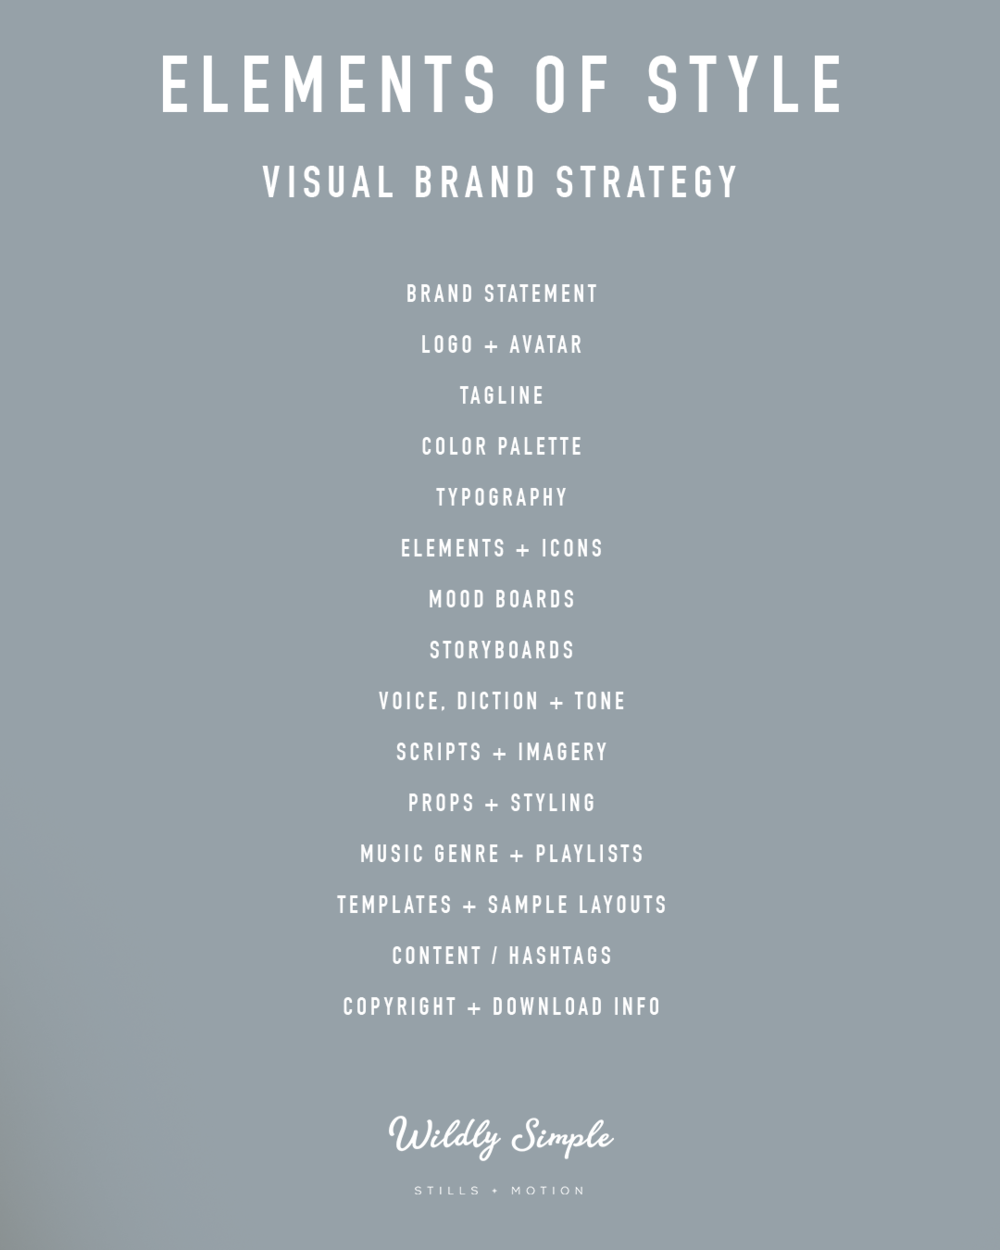 ELEMENTS OF STYLE — A VISUAL BRAND STRATEGY CHECKLIST FOR FILM / VIDEO PRODUCTION + PHOTO SHOOTS